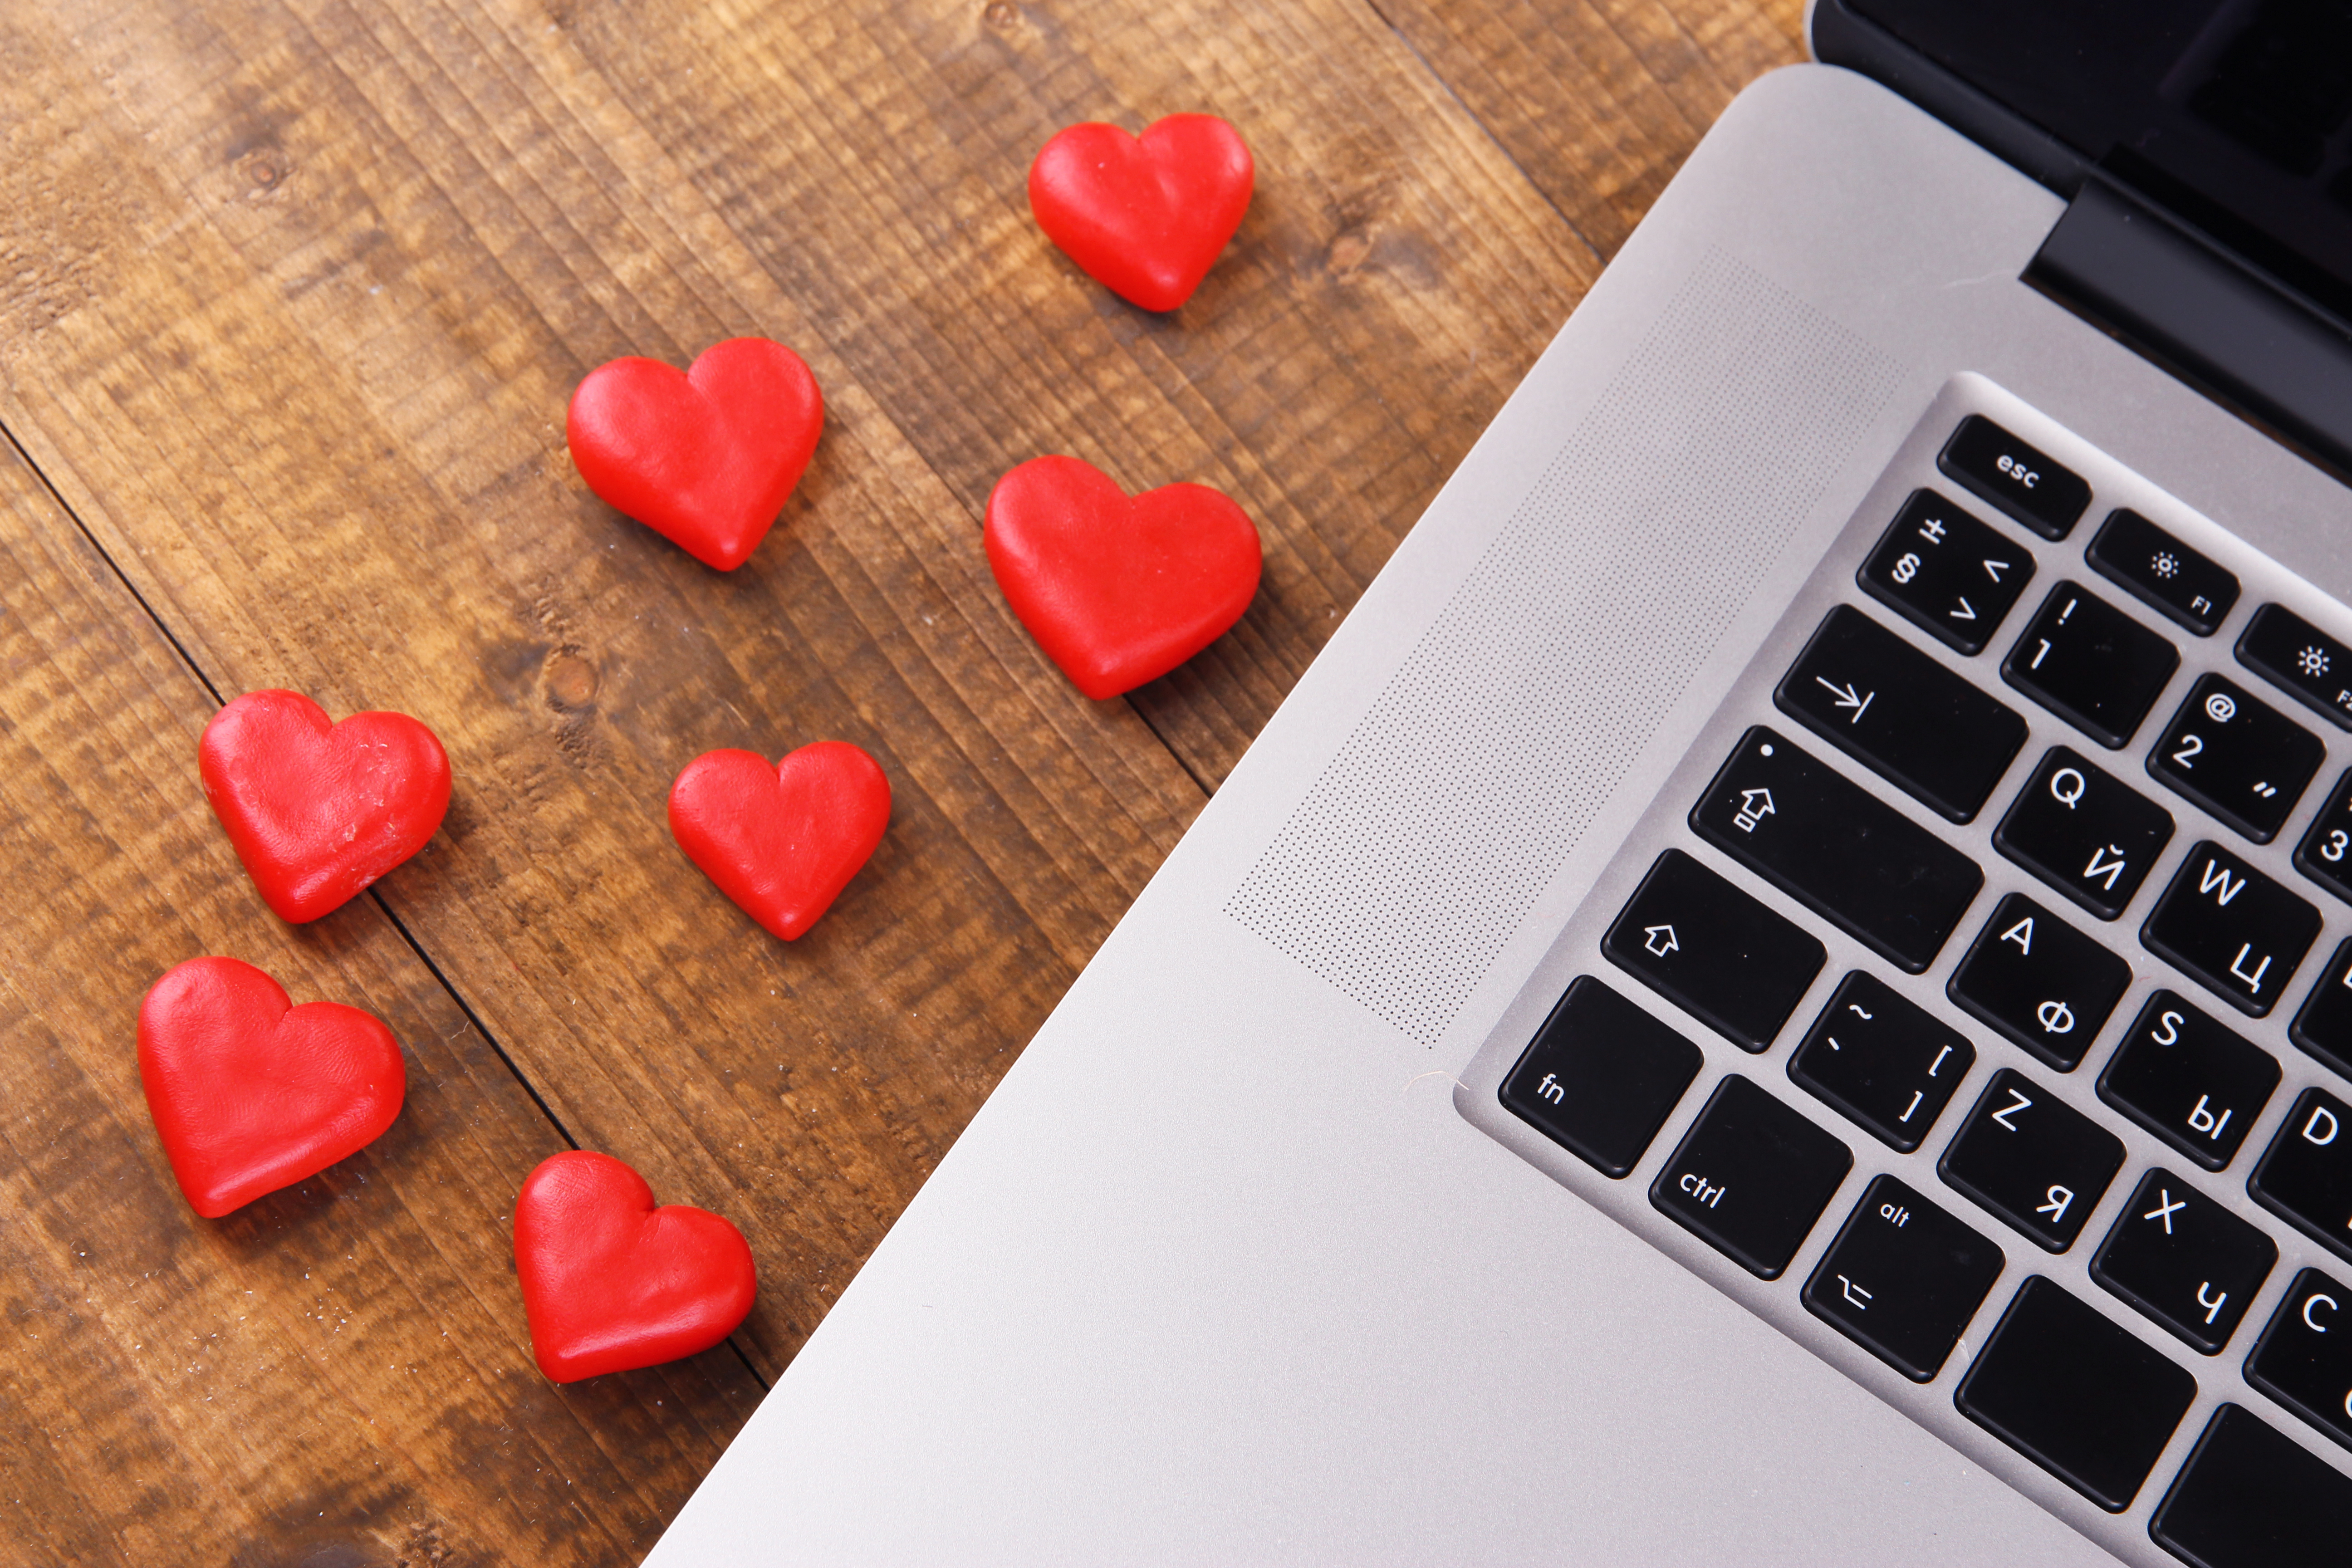 How to hack online dating profile